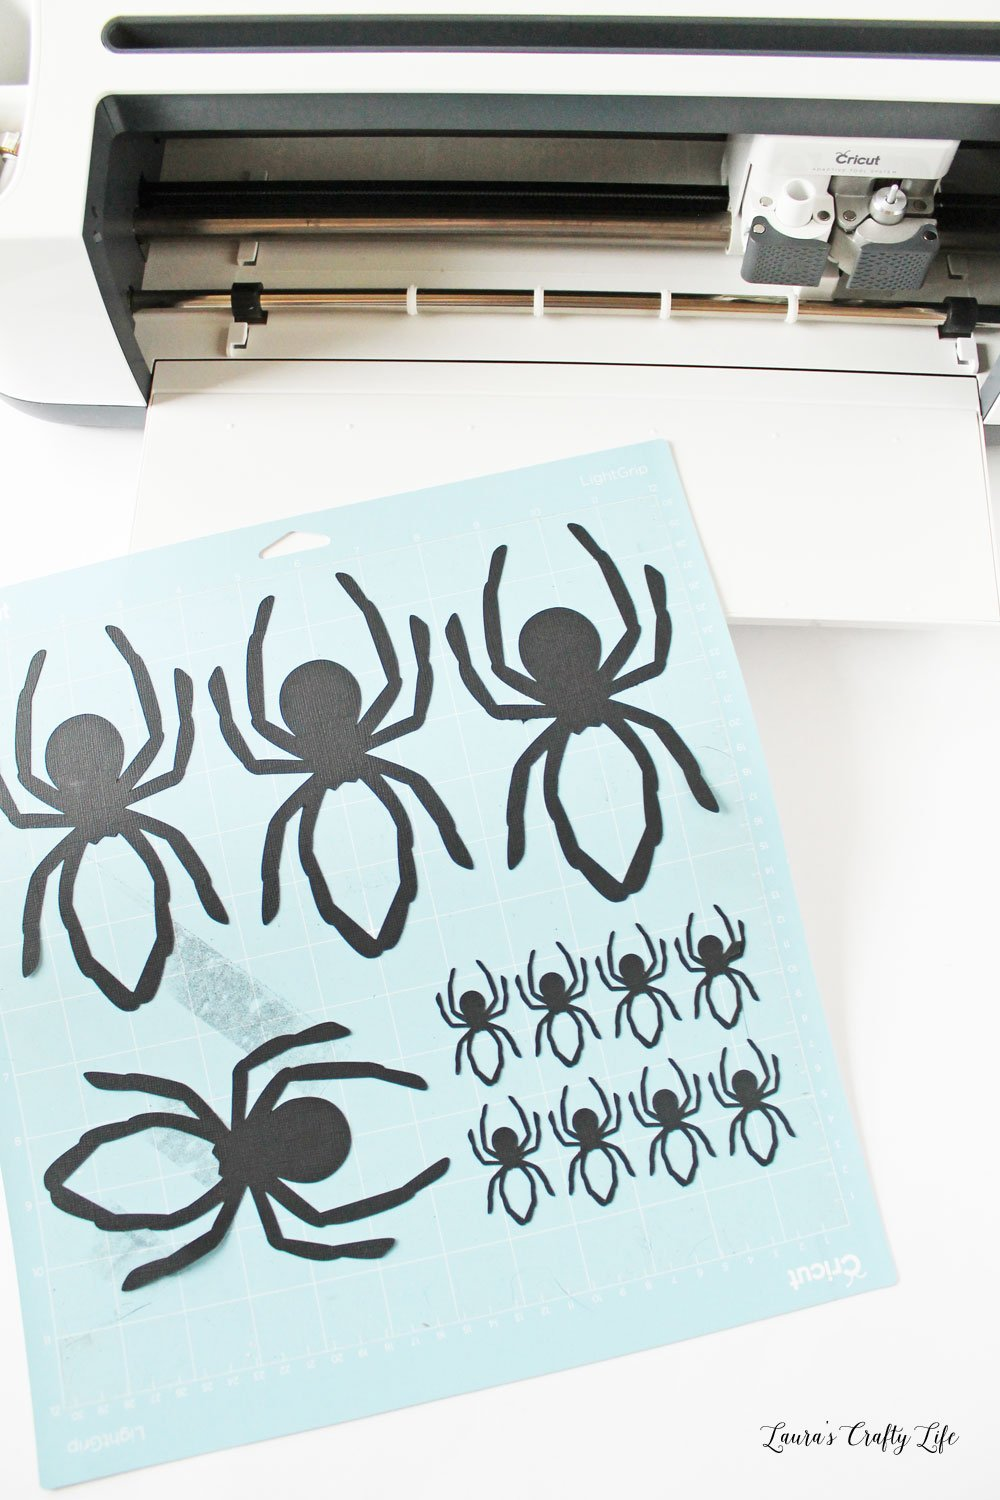 Cardstock spiders made with Cricut Maker